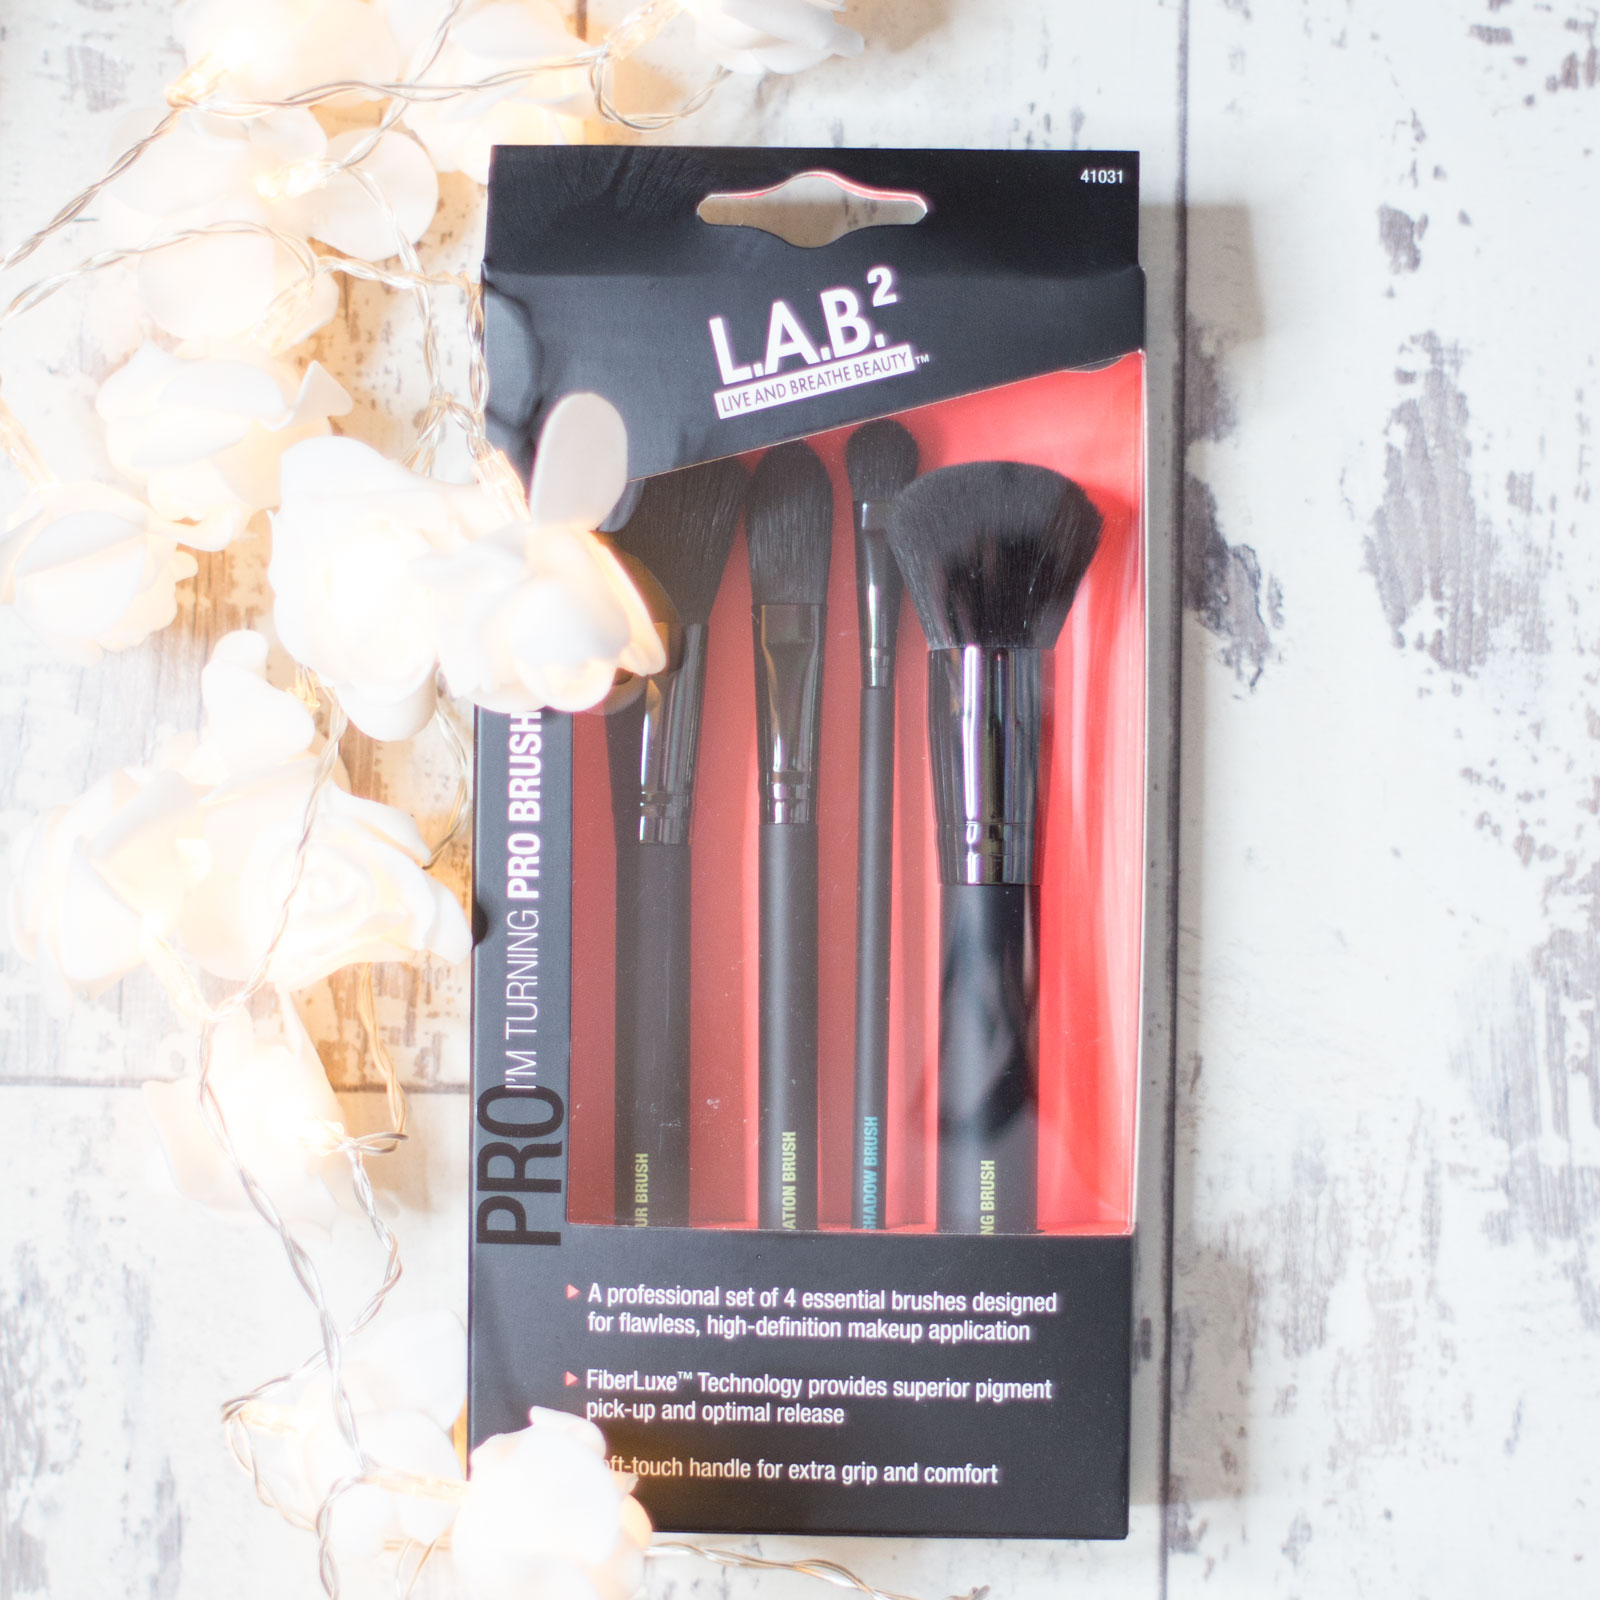 LAB2 'I'm Turning Pro' Brush Kit Review